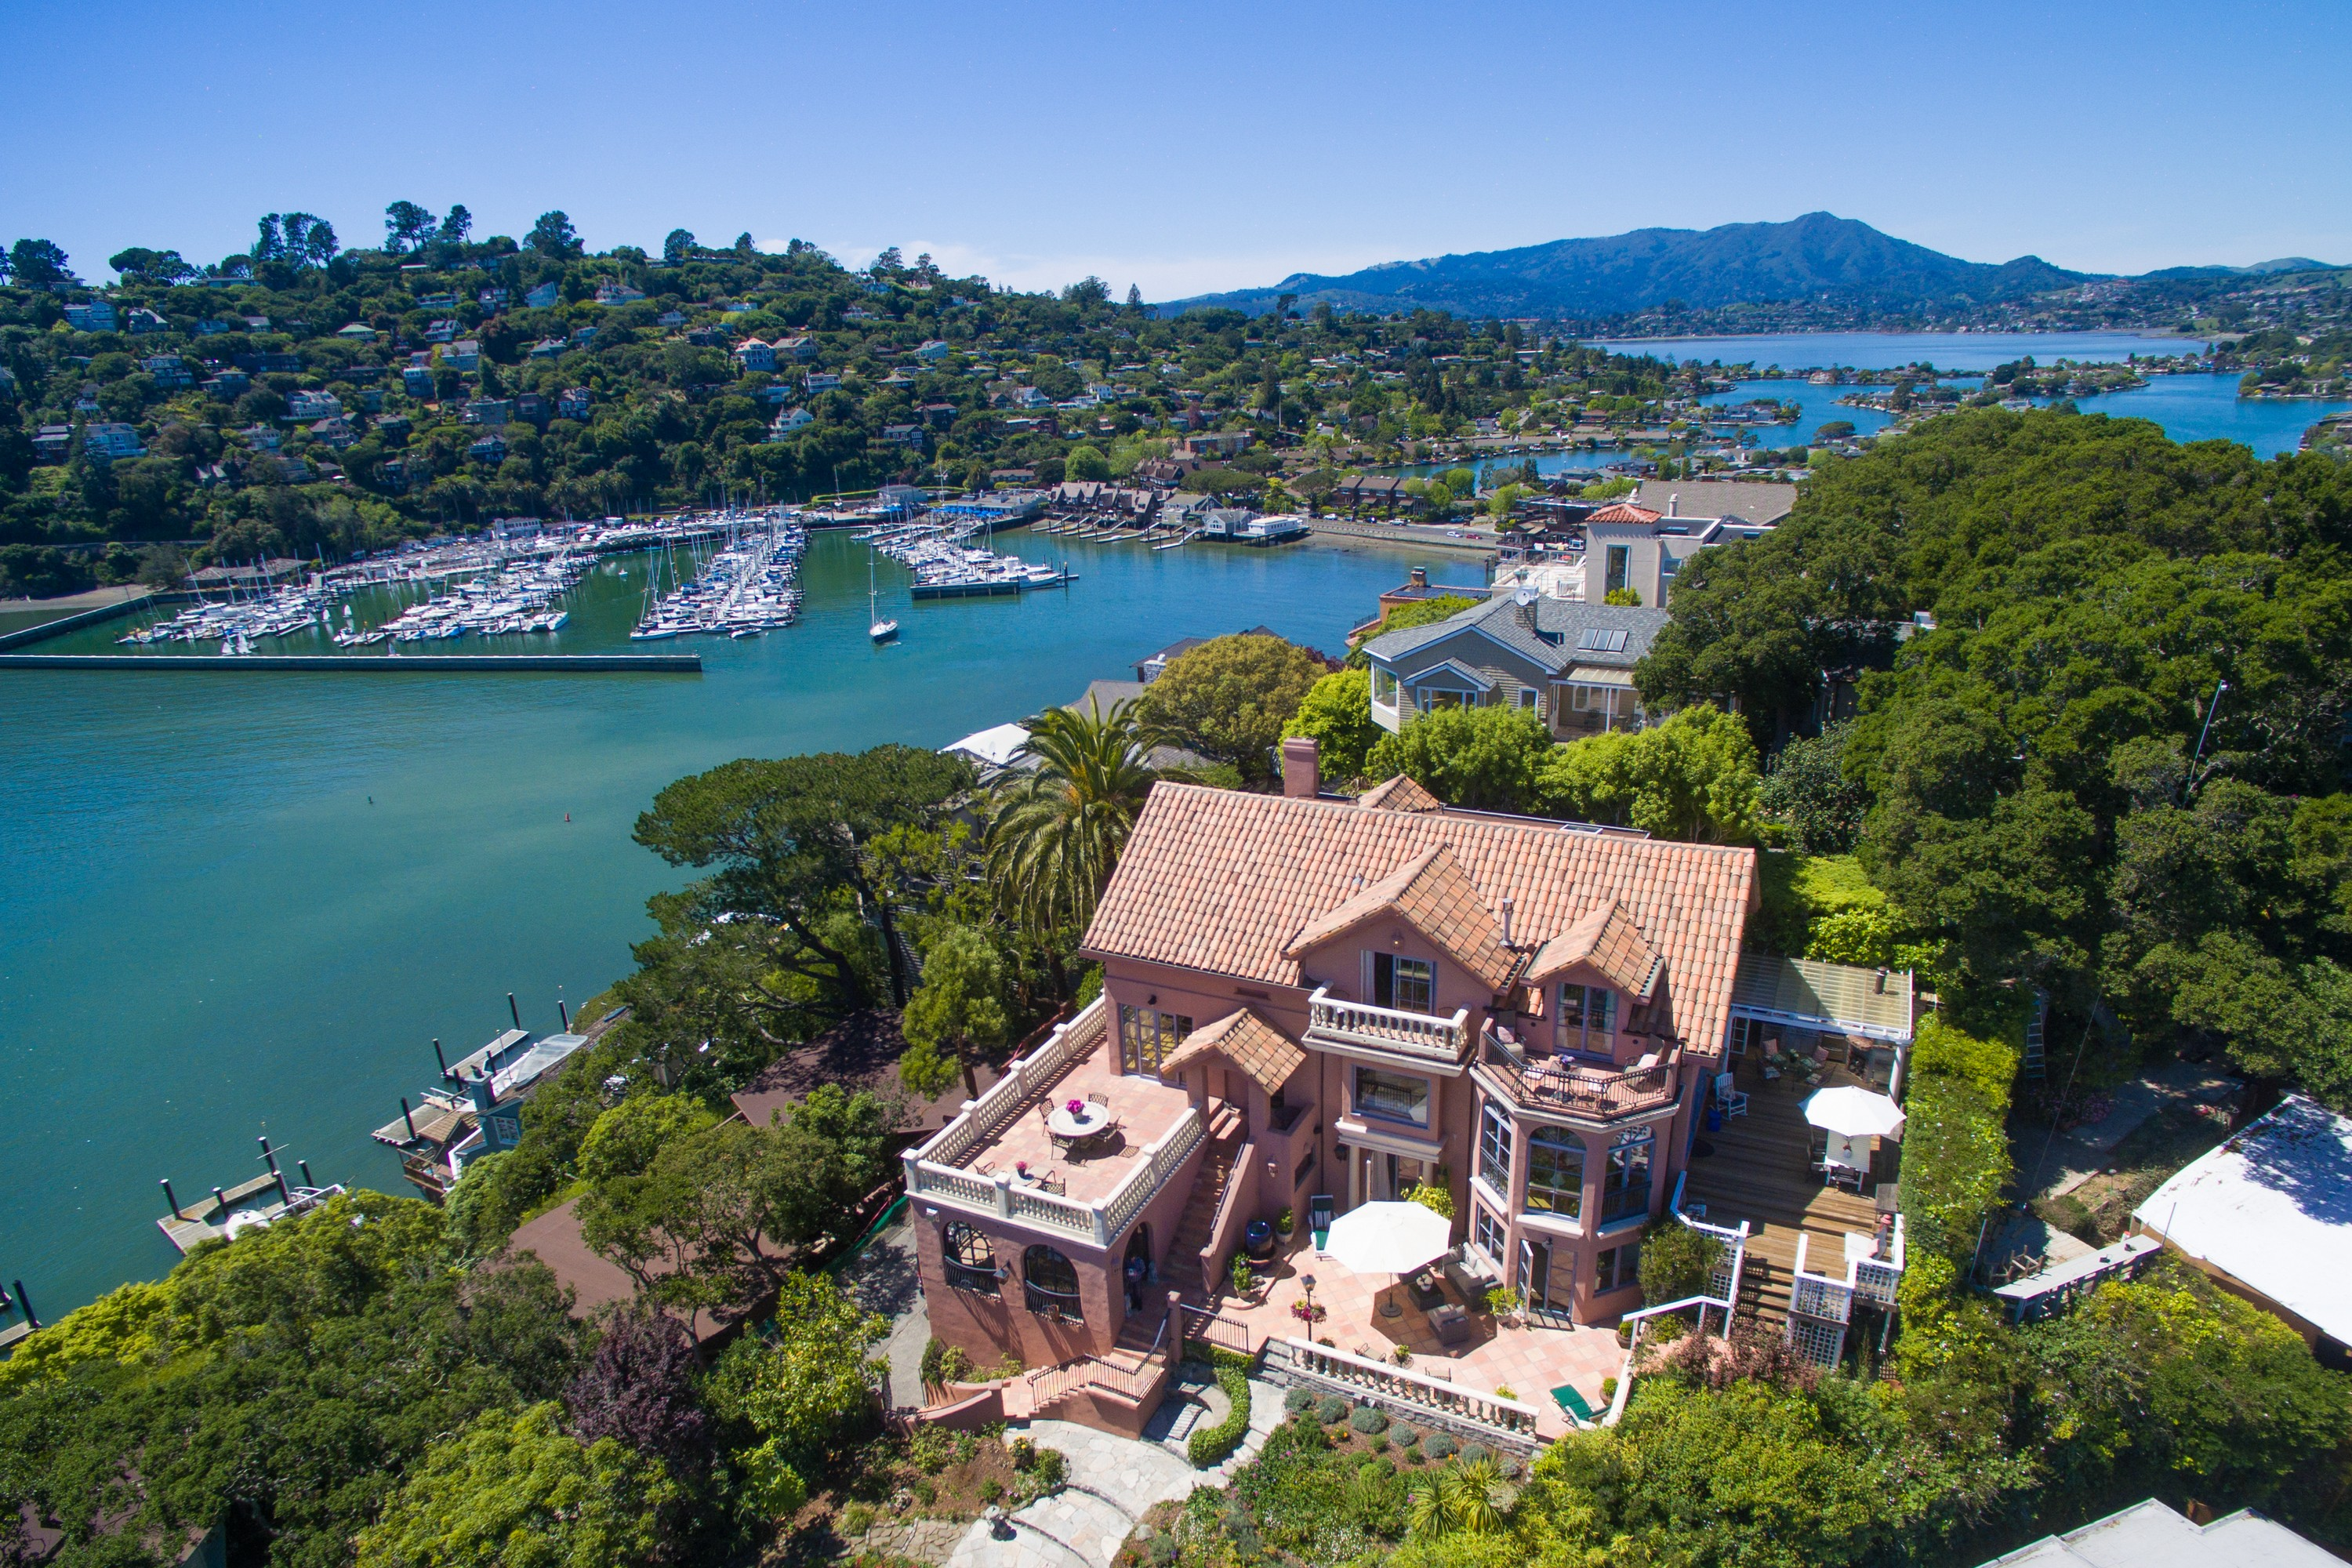 Single Family Home for Sale at Crown Jewel 80 Alcatraz Avenue Belvedere, California 94920 United States